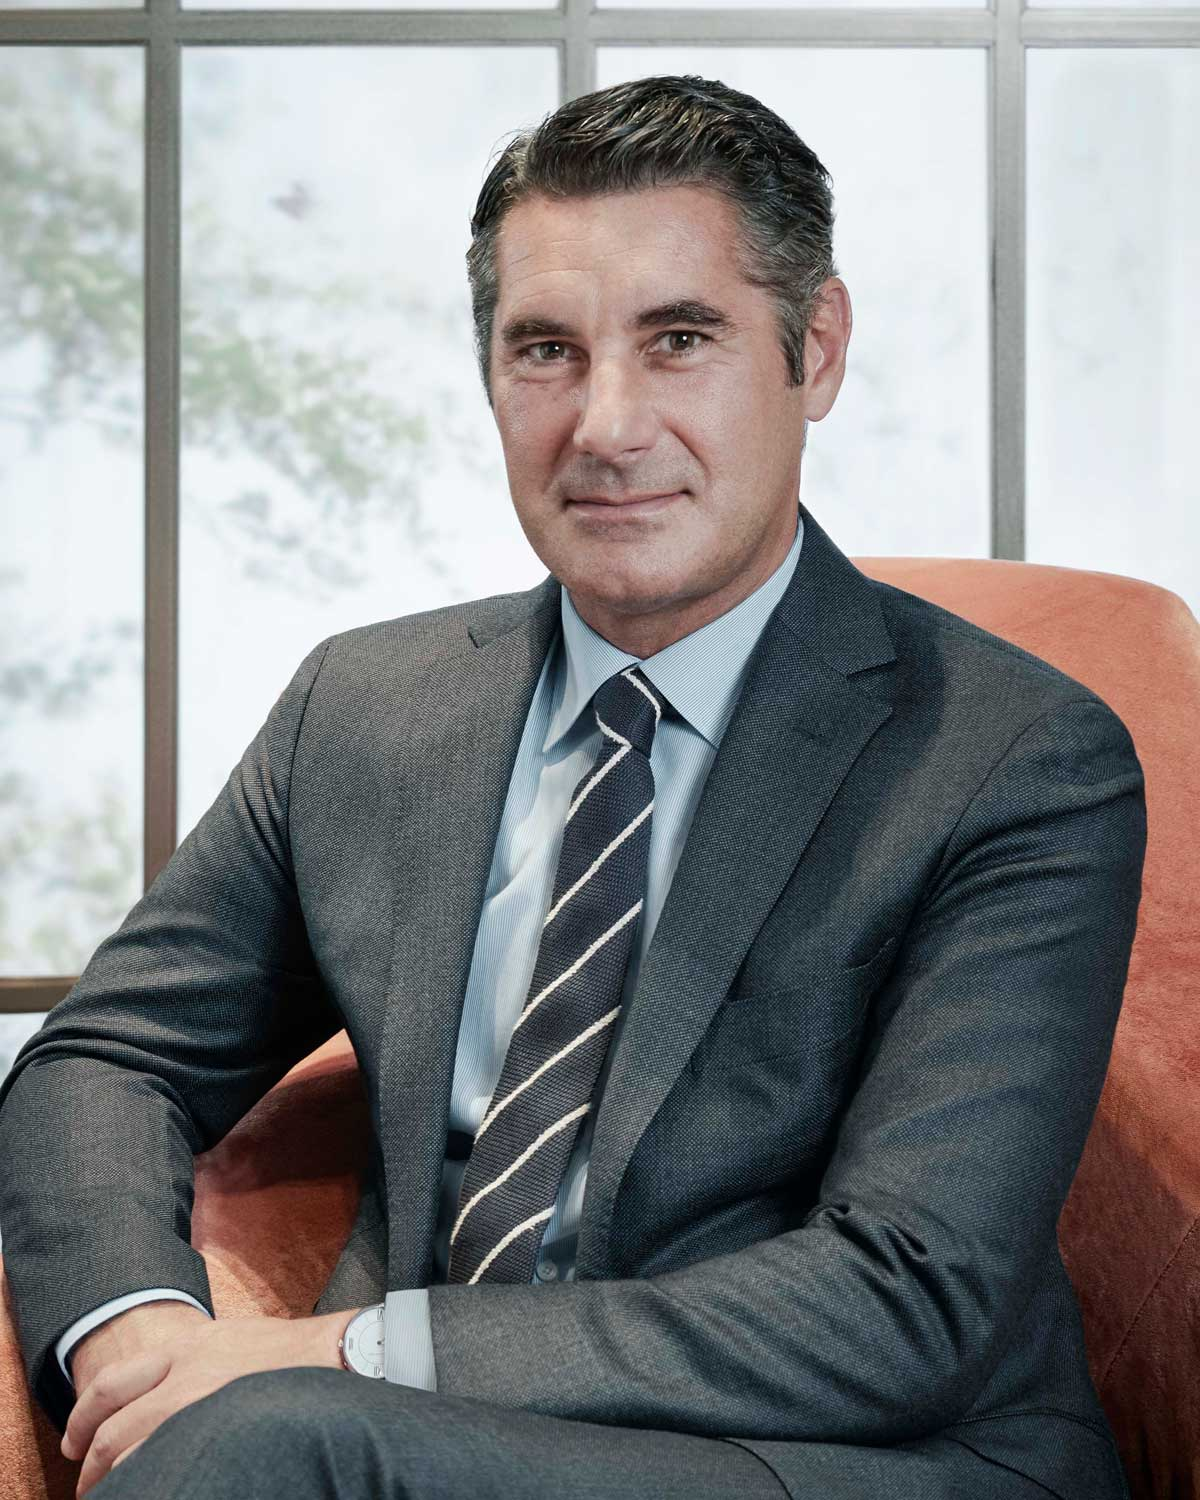 Hugues de Pins the managing director of Van Cleef & Arpels for South East Asia and Australia